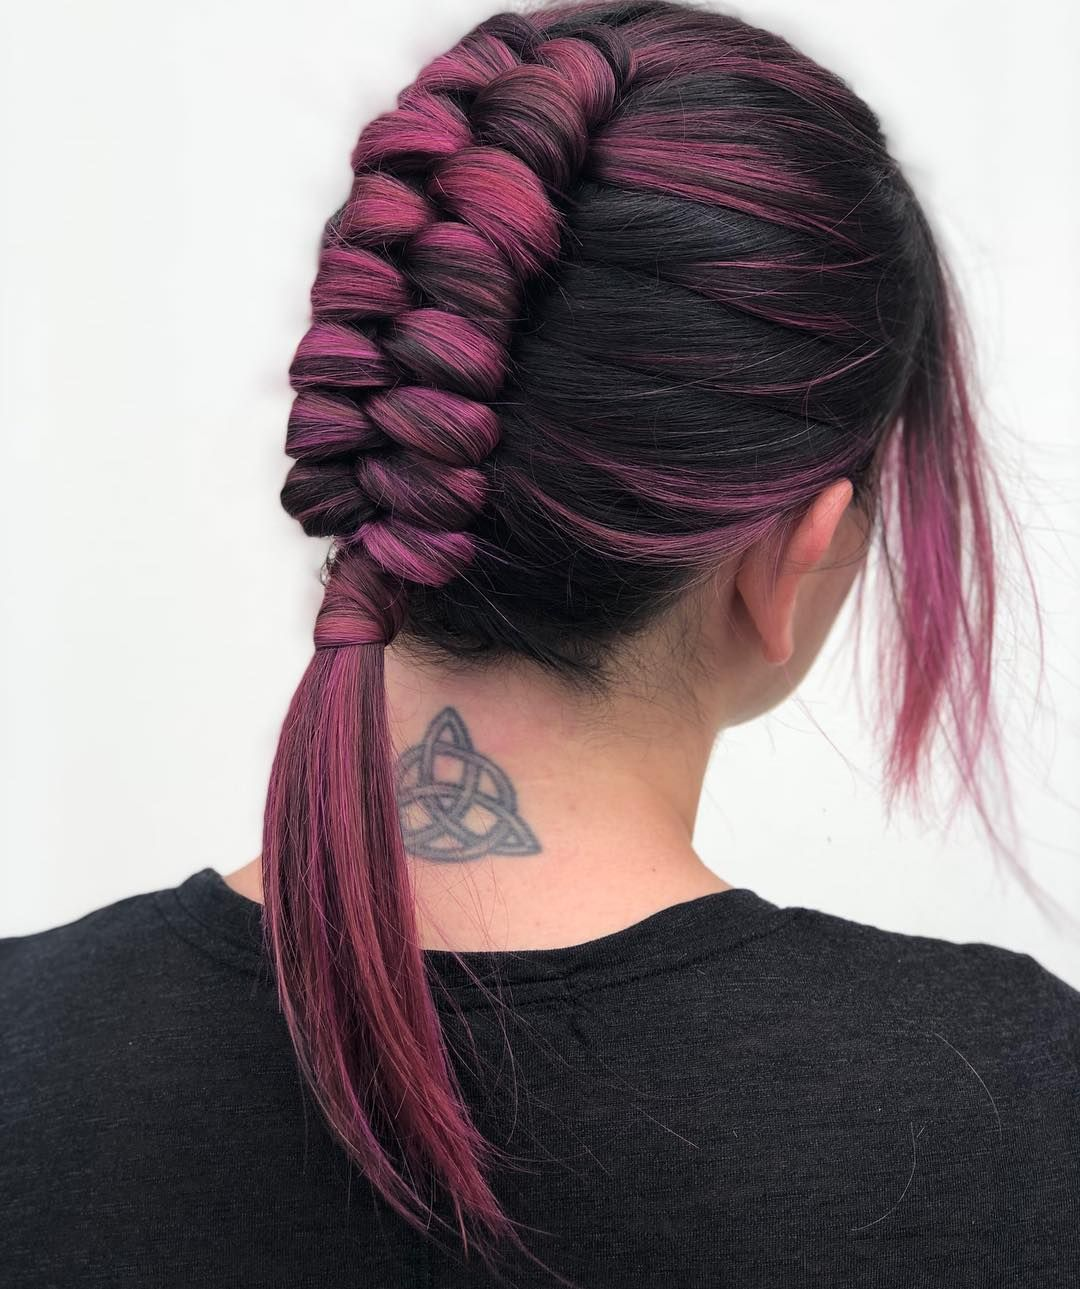 Guys My Pink Muse Let Me Infinity Braid Her Hair I Can T The End Infini Infinitybraid Pinkhai In 2020 Braided Hairstyles Hair Styles Summer Hairstyles